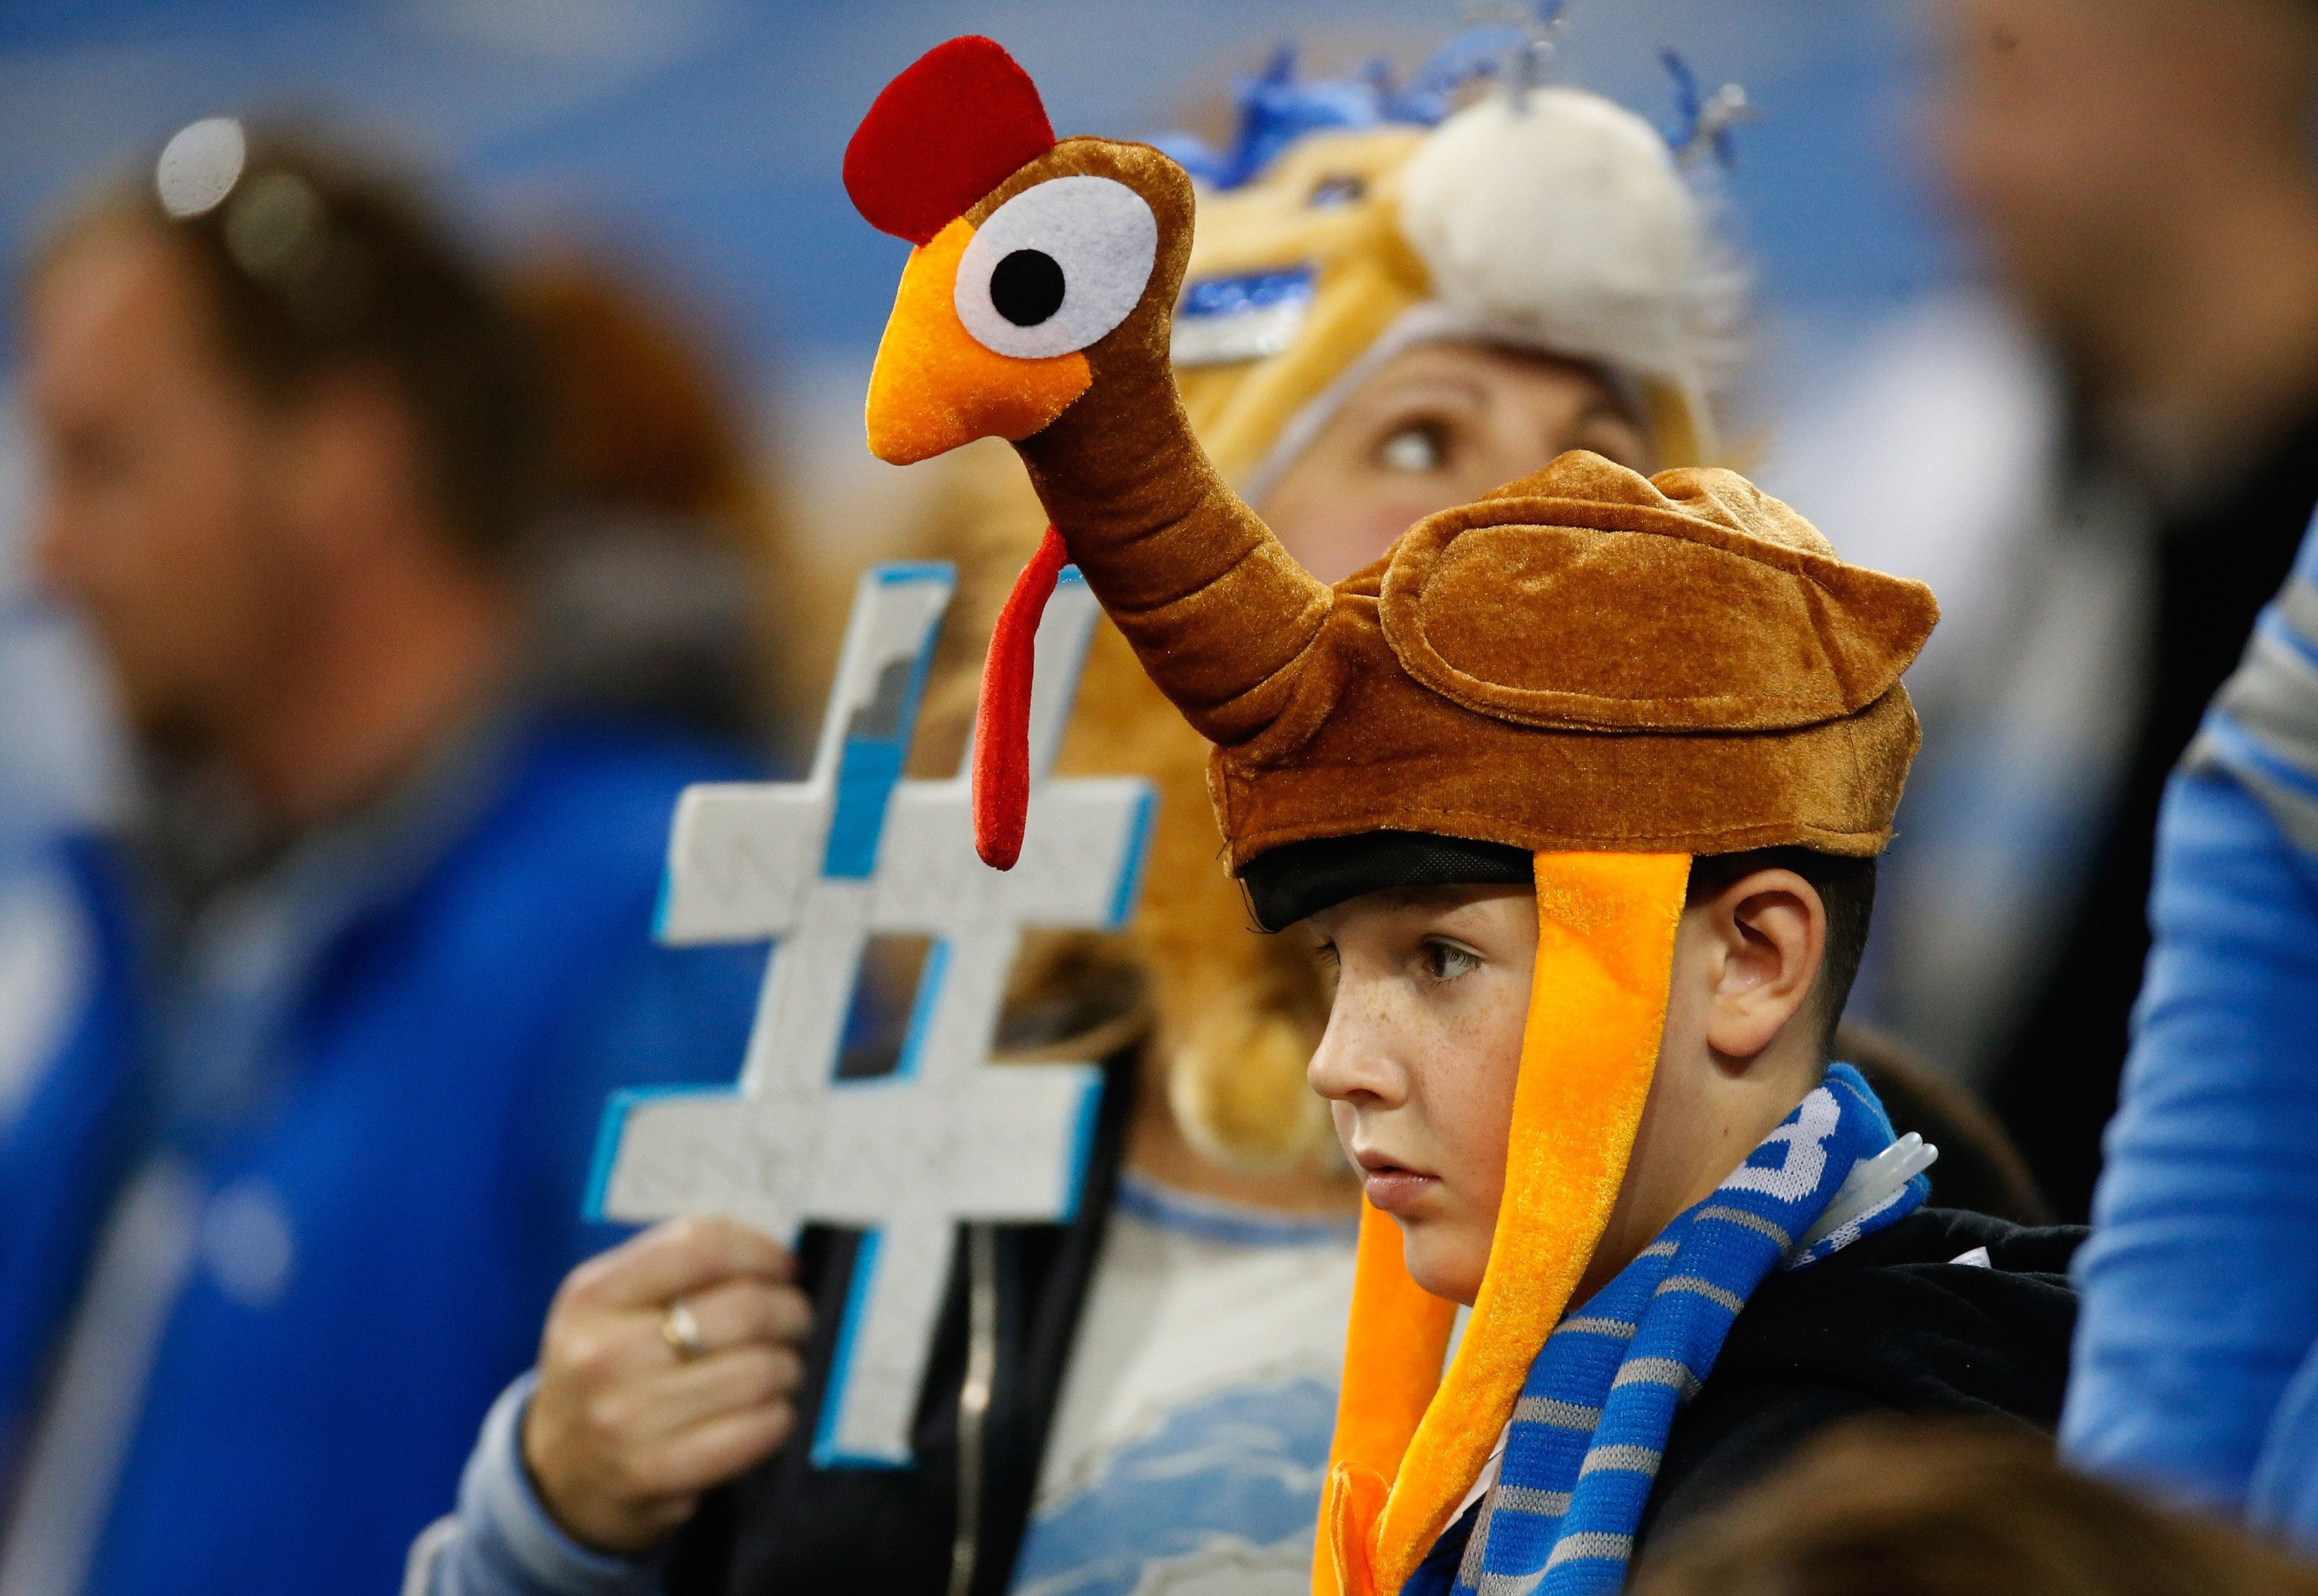 A young fan with a turkey hat looks on during the Thanksgiving day game between the Lions and theBears at Ford Field on